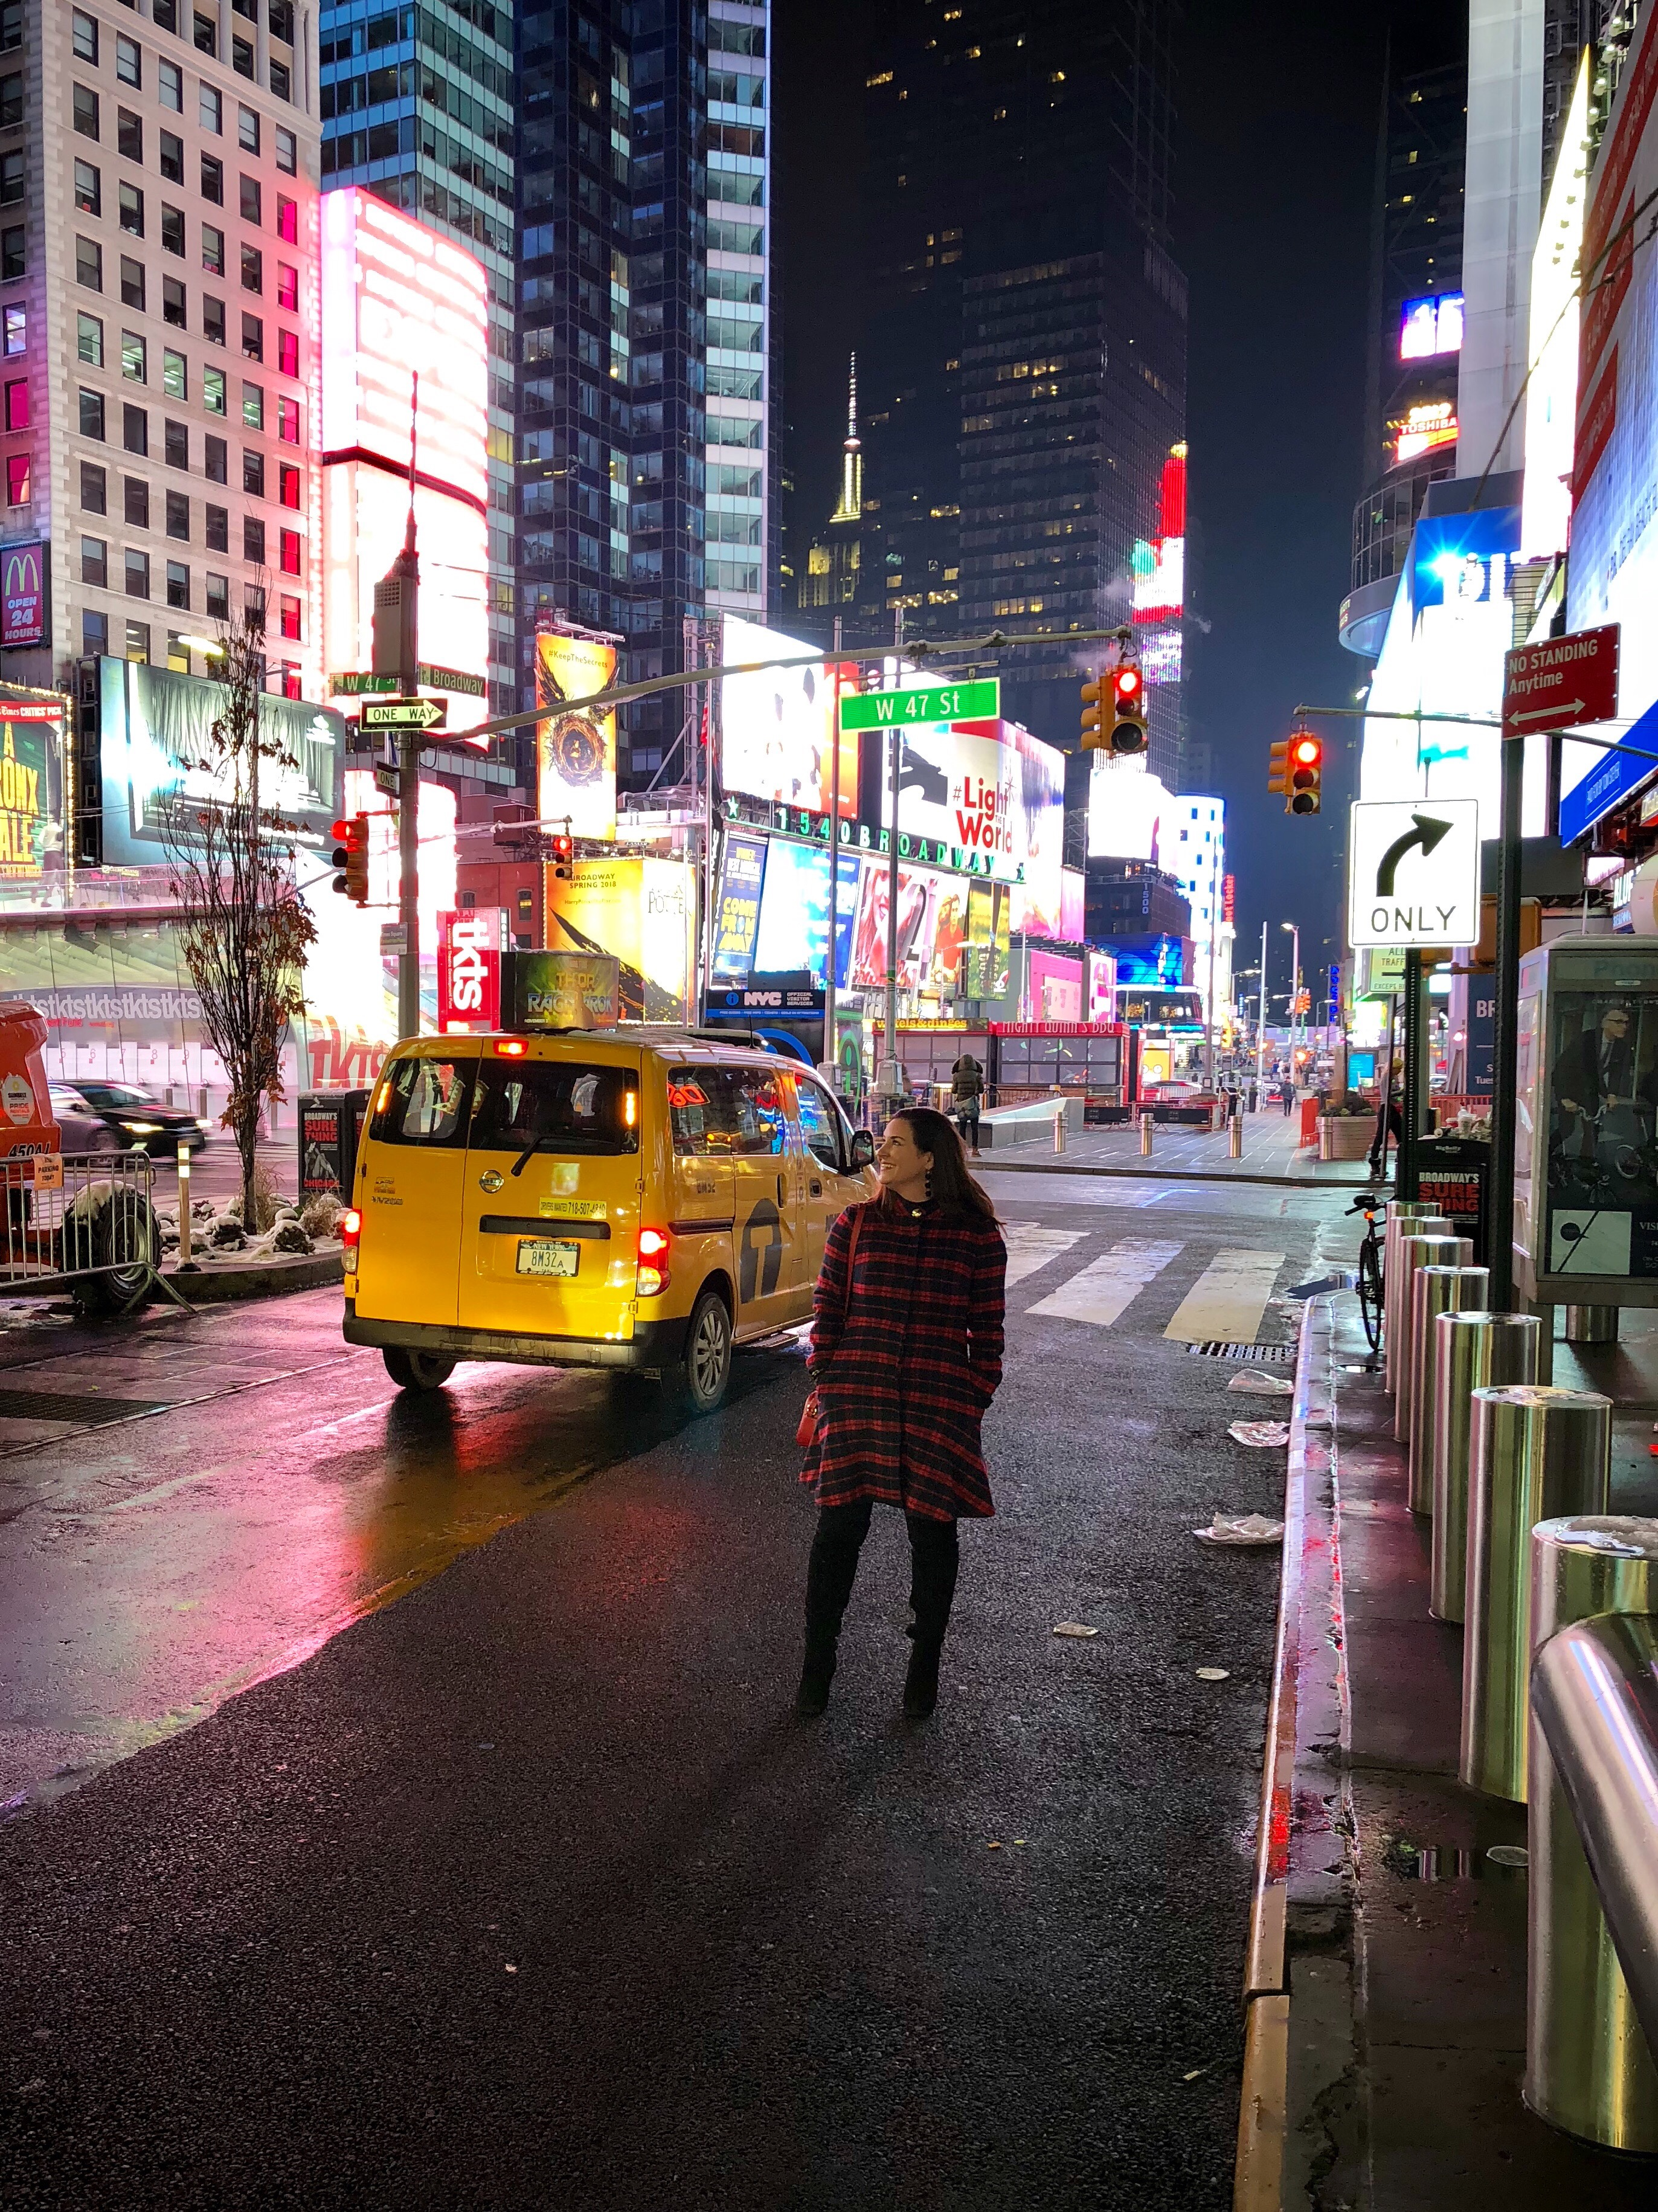 New York CityTravel Guide: What to do in New York at Christmas